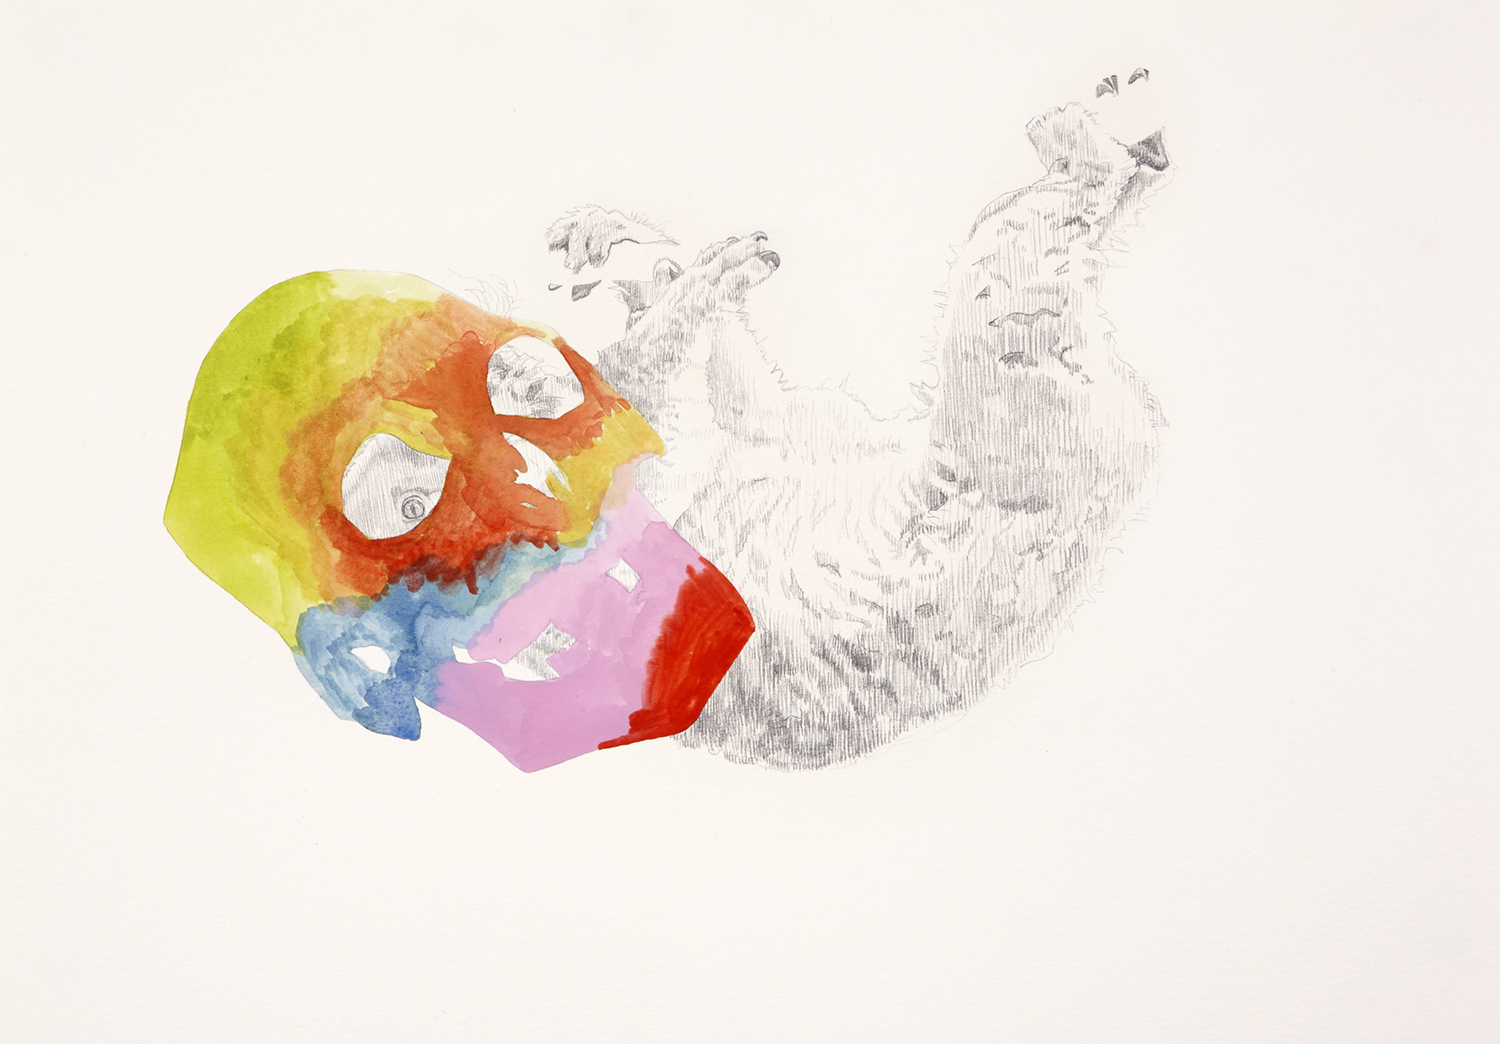 Skull Centric Behaviour #10, 2011, Watercolour and pencil on paper, 42.0 x 29.7 cm, Photo: Sam Scoufos